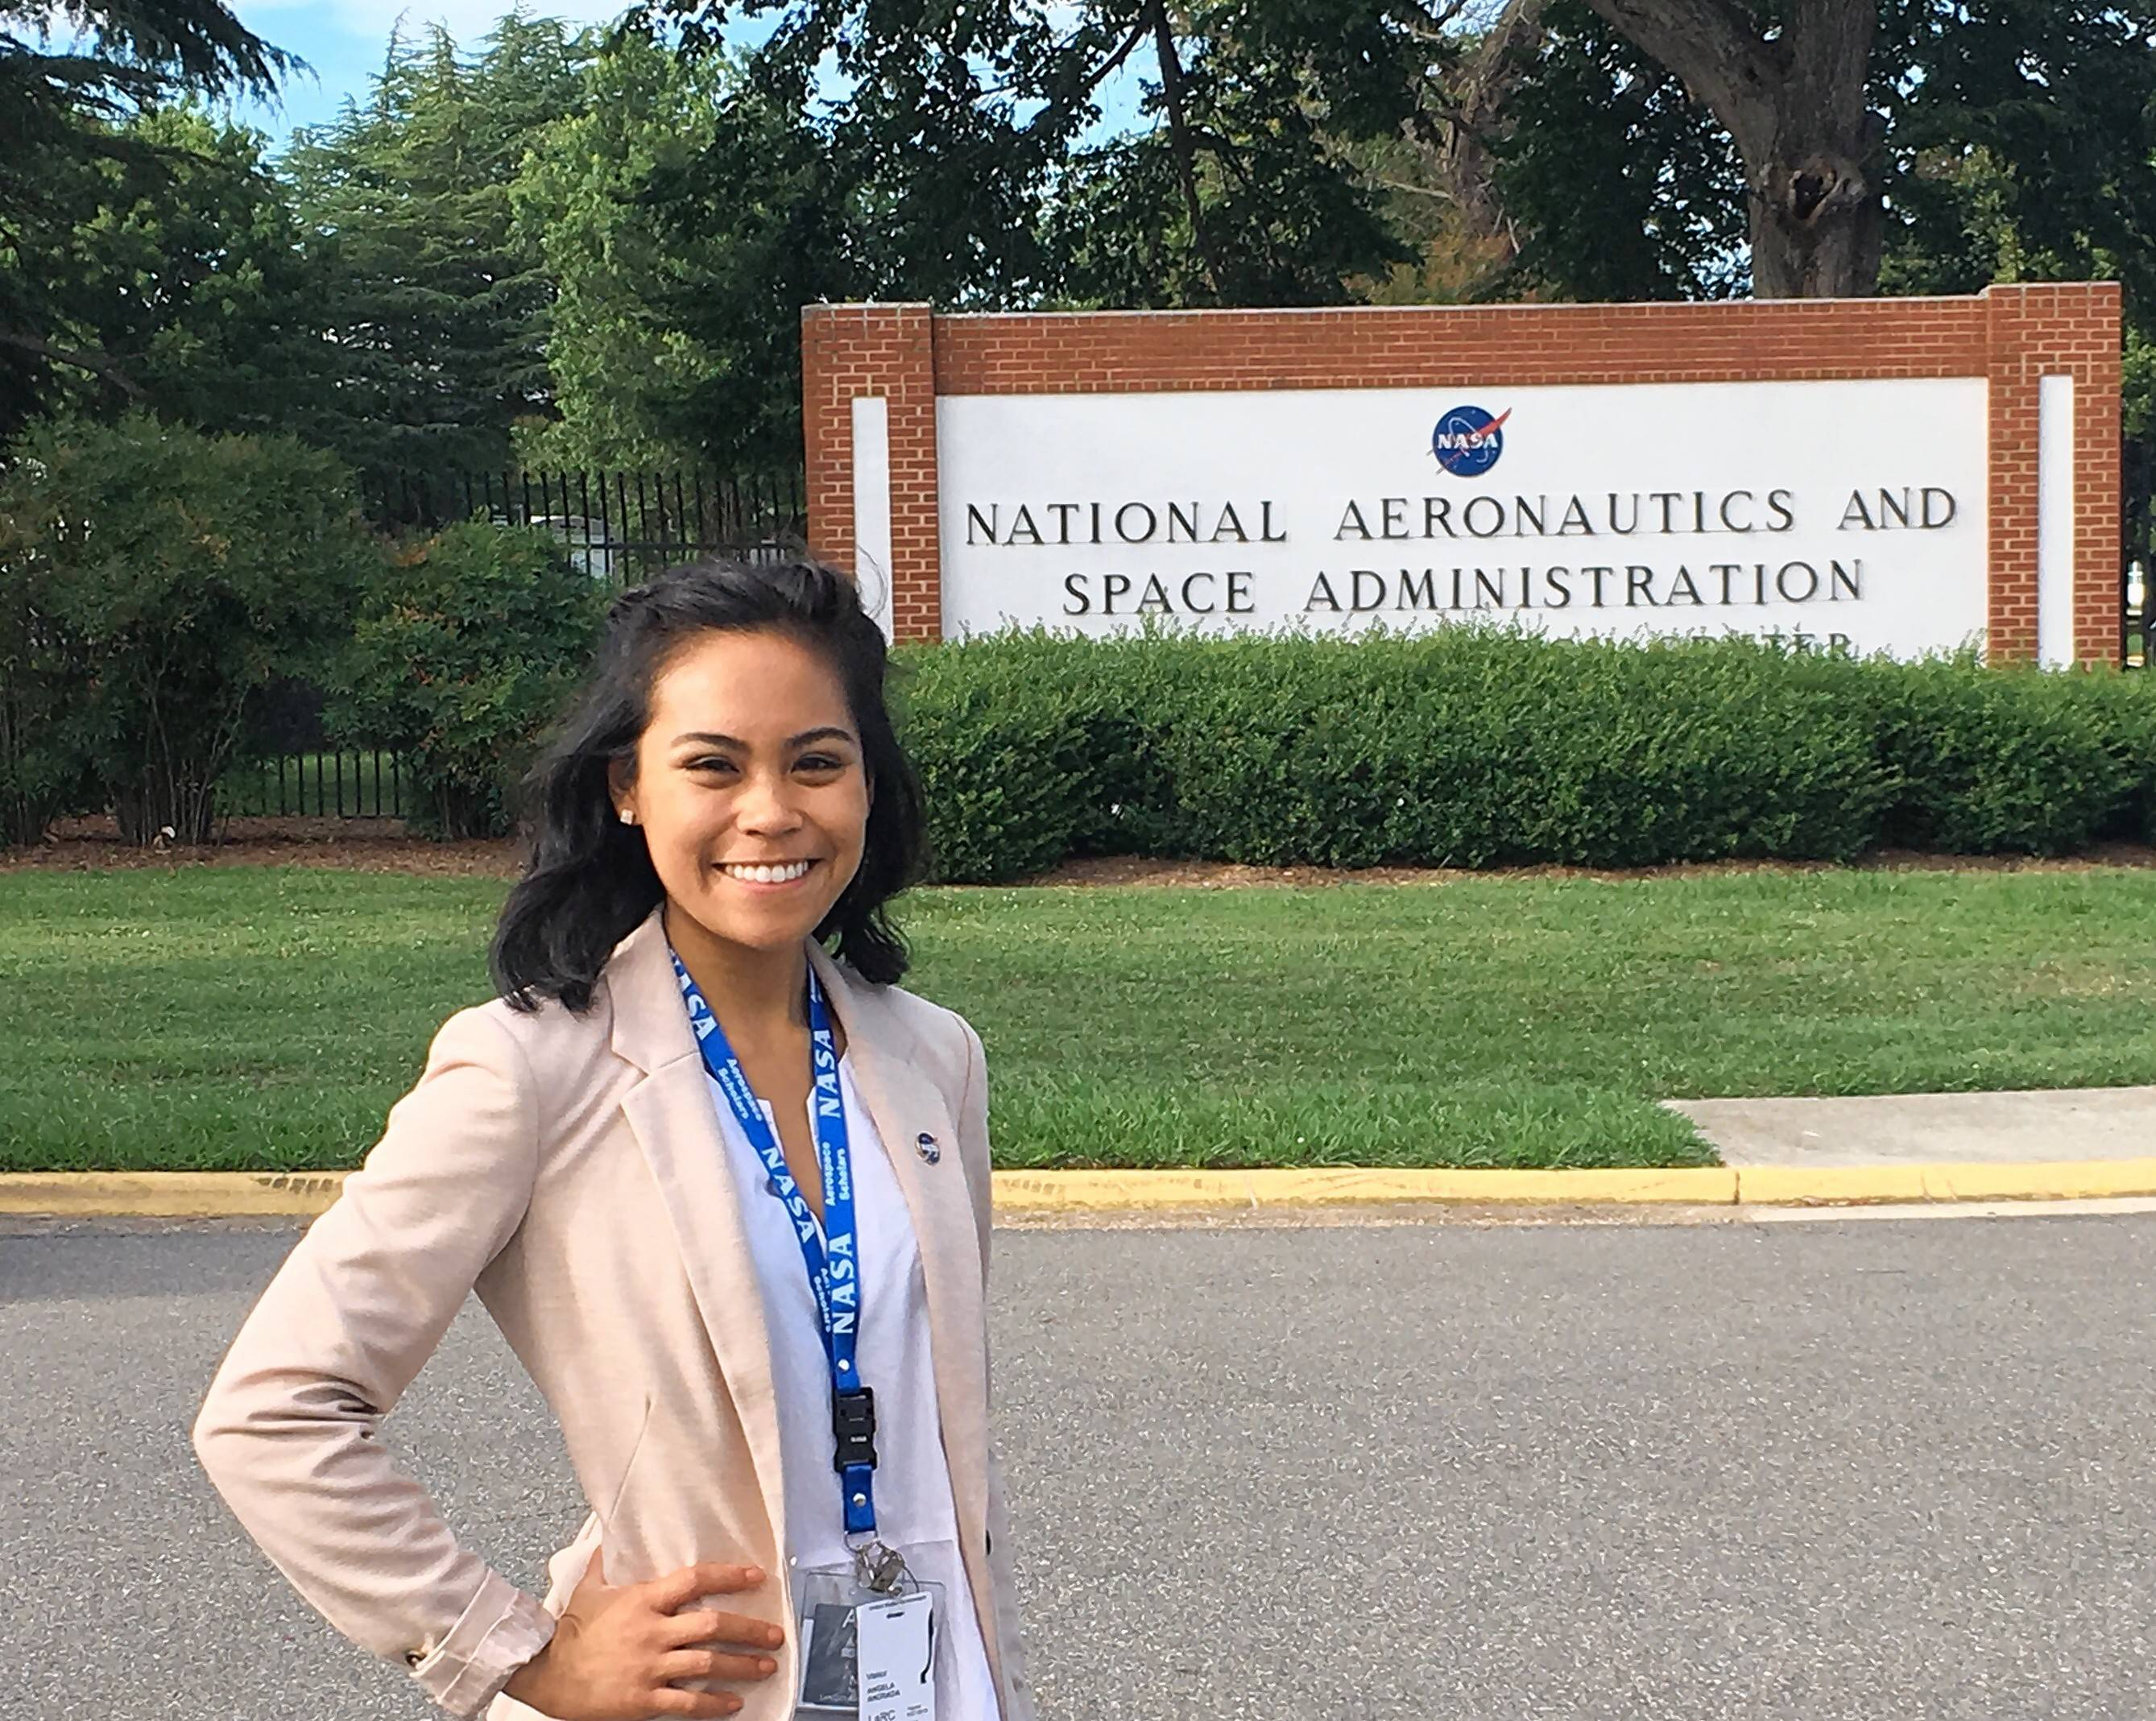 Elgin Community College student Angela Andrada, 19, of Elgin, earned a certificate signed by Ellen Ochoa -- the first Hispanic woman to go into space on a nine-day mission aboard the shuttle Discovery in 1993 -- for her participation in the NASA Community College Aerospace Scholars program.